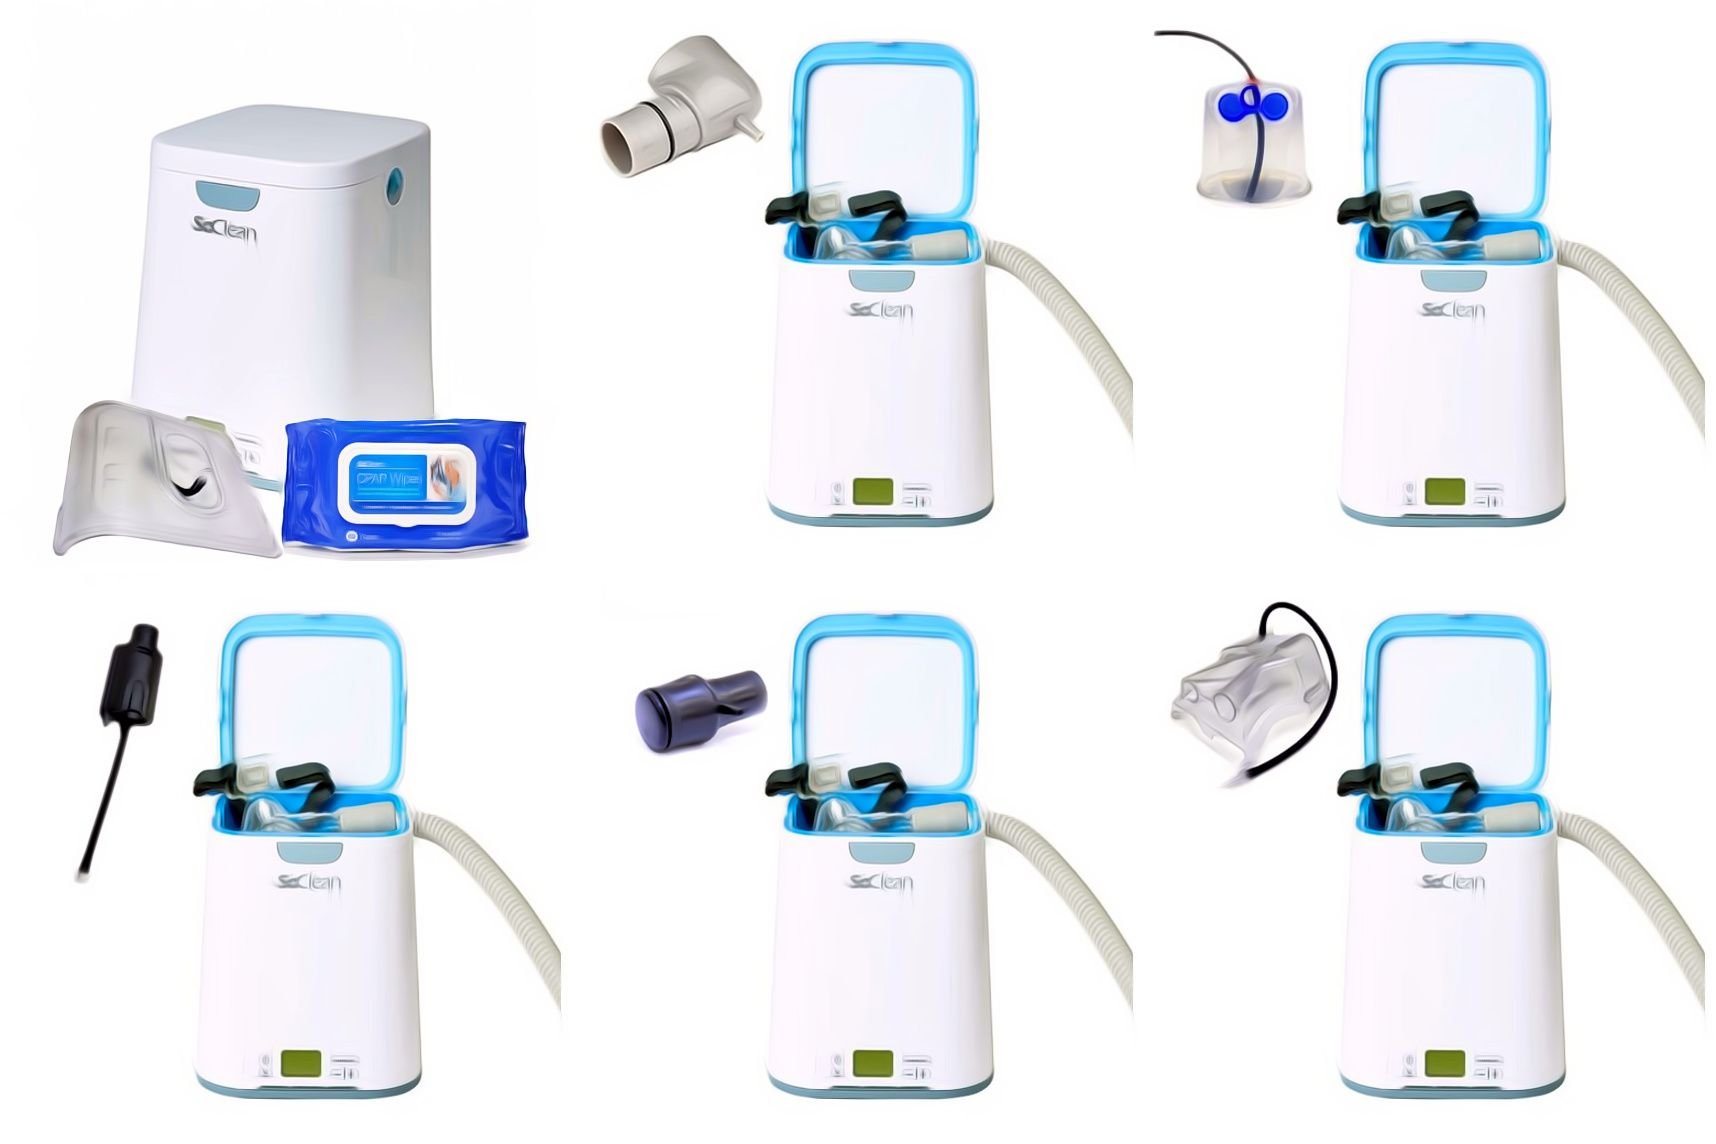 Soclean 2 Cpap Cleaner Sanitizer 30 Day Risk Free Trial